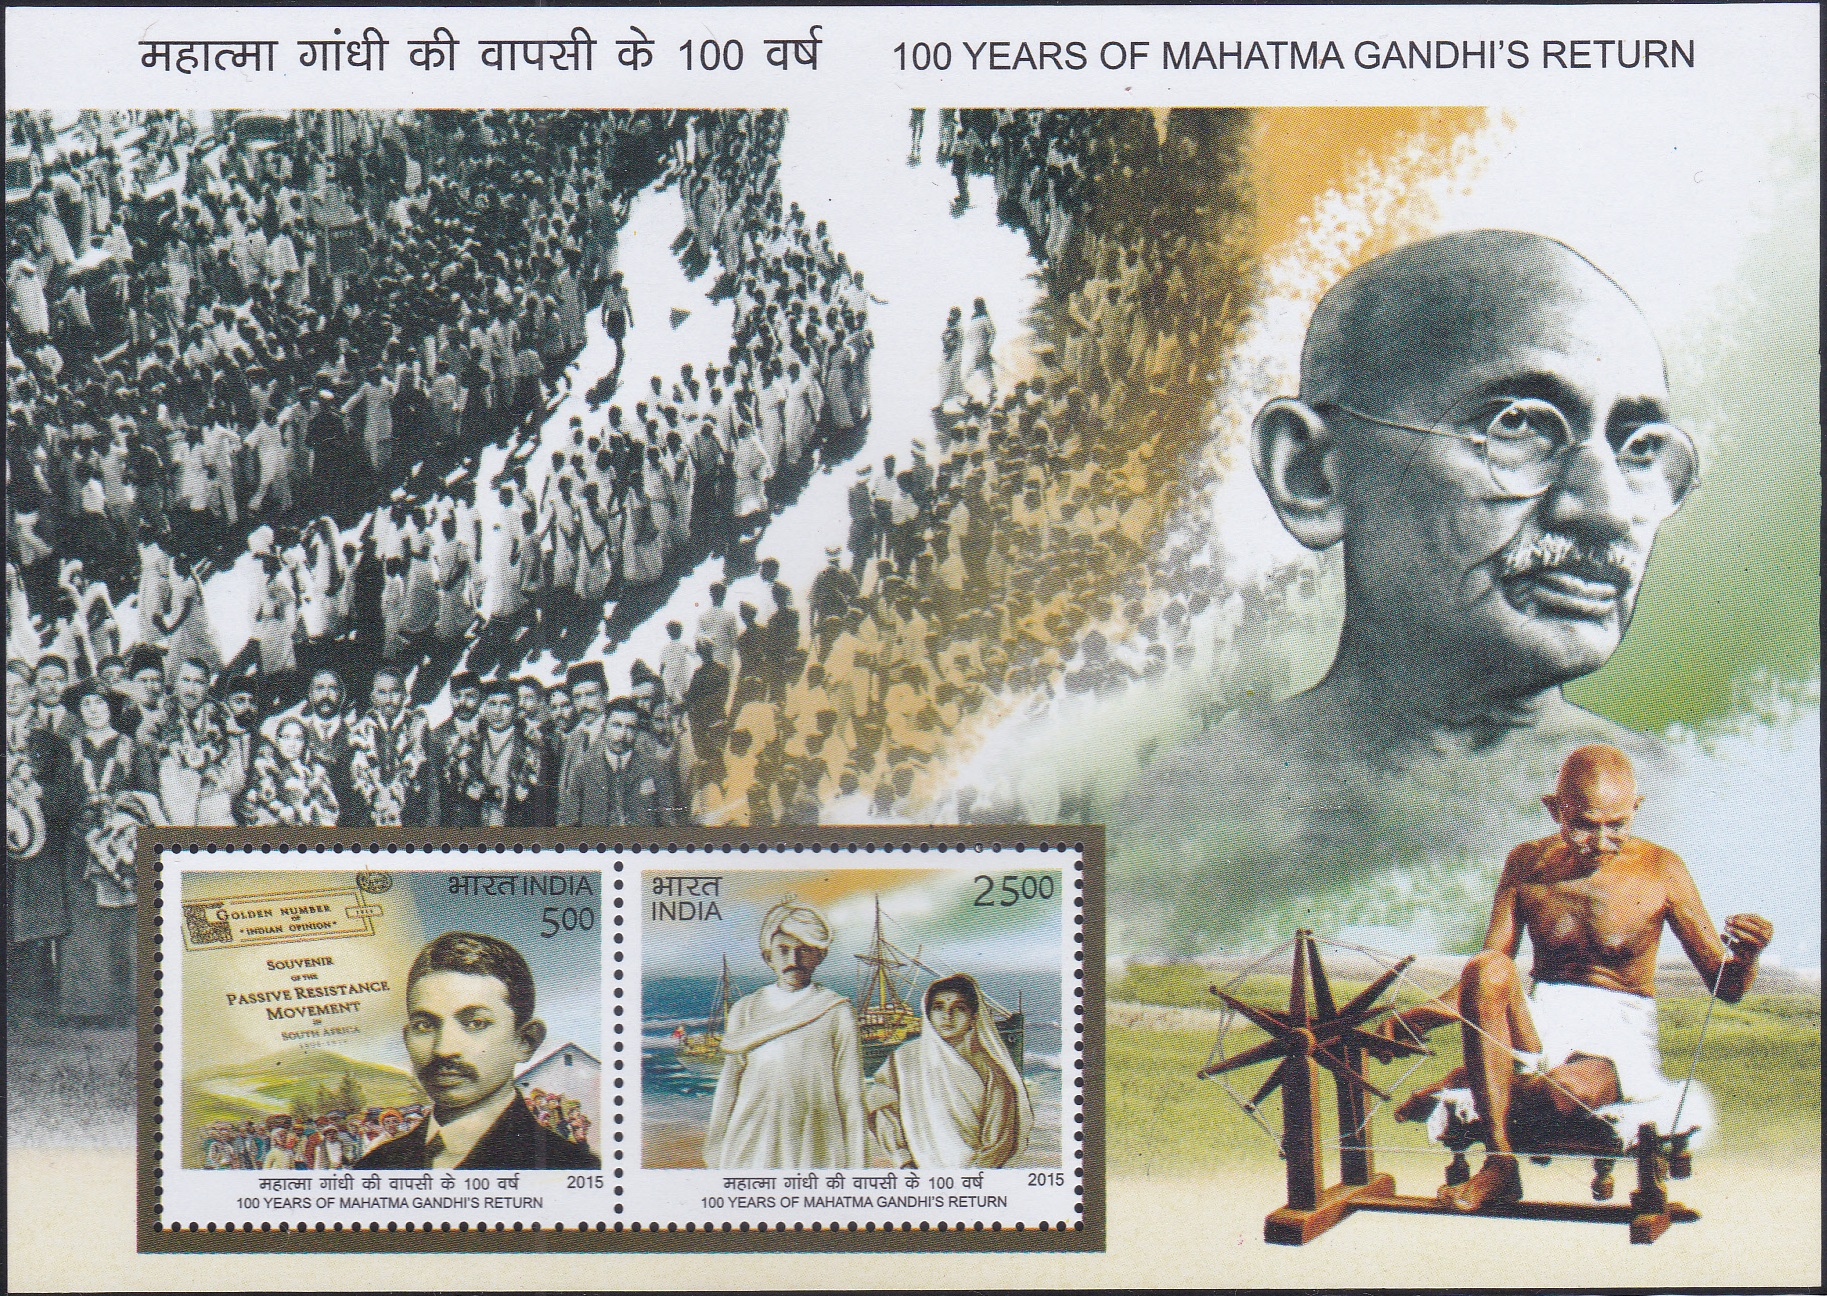 Gandhi returned to India in 1915 from South Africa